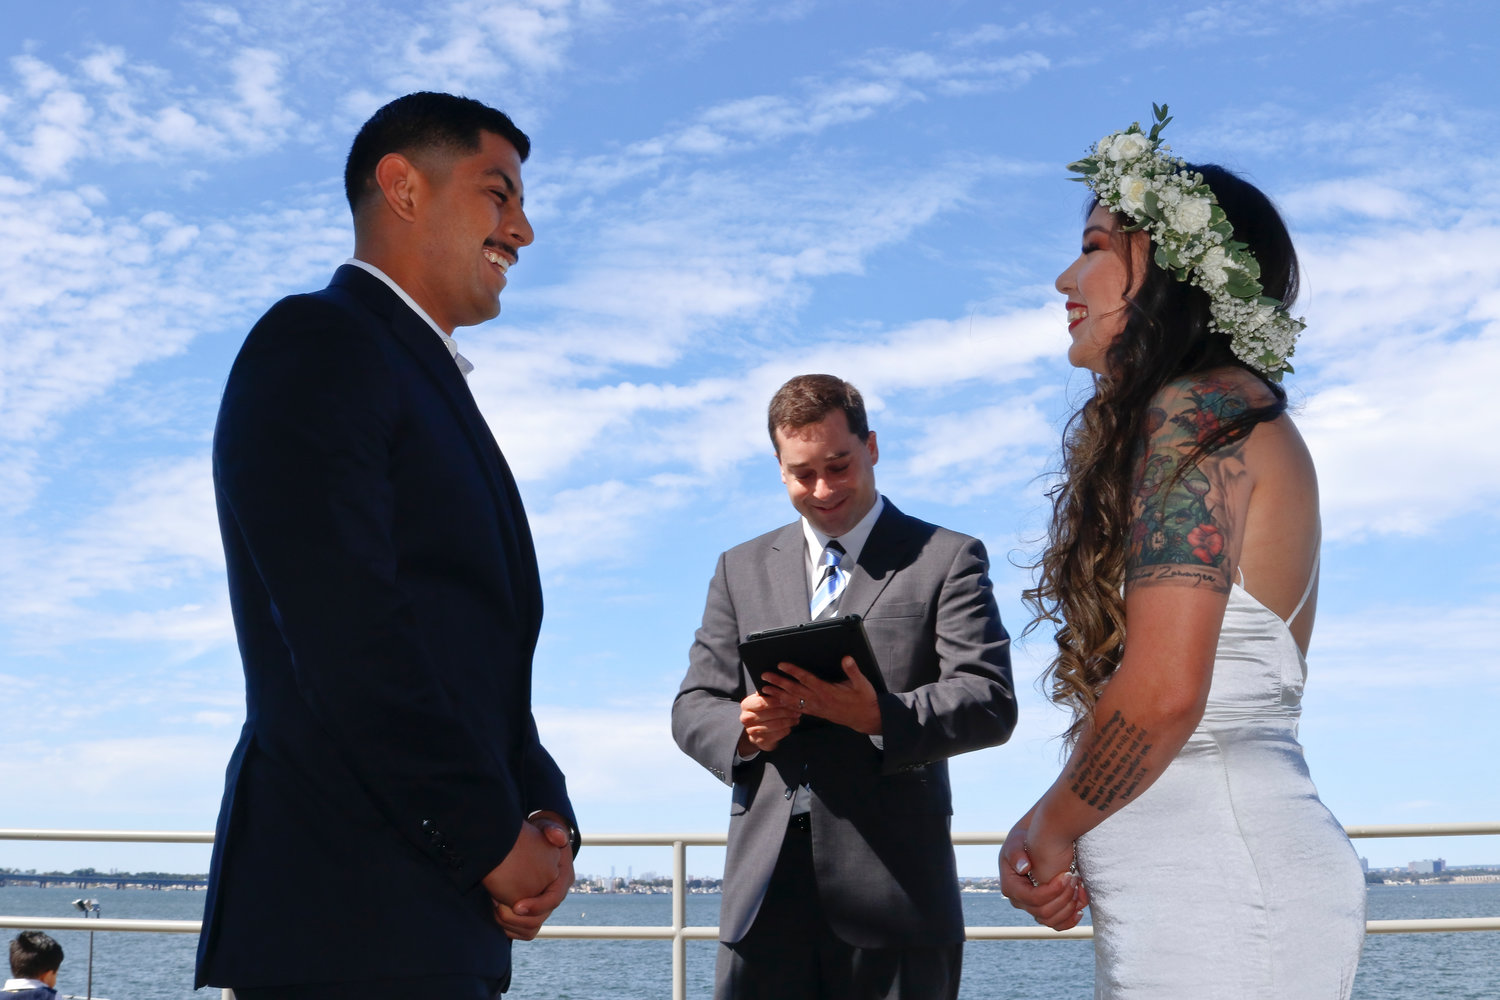 Officiating Ryan and Samantha wedding was fellow East Meadow resident Andrew Vardakis, of the U.S. Coast Guard.